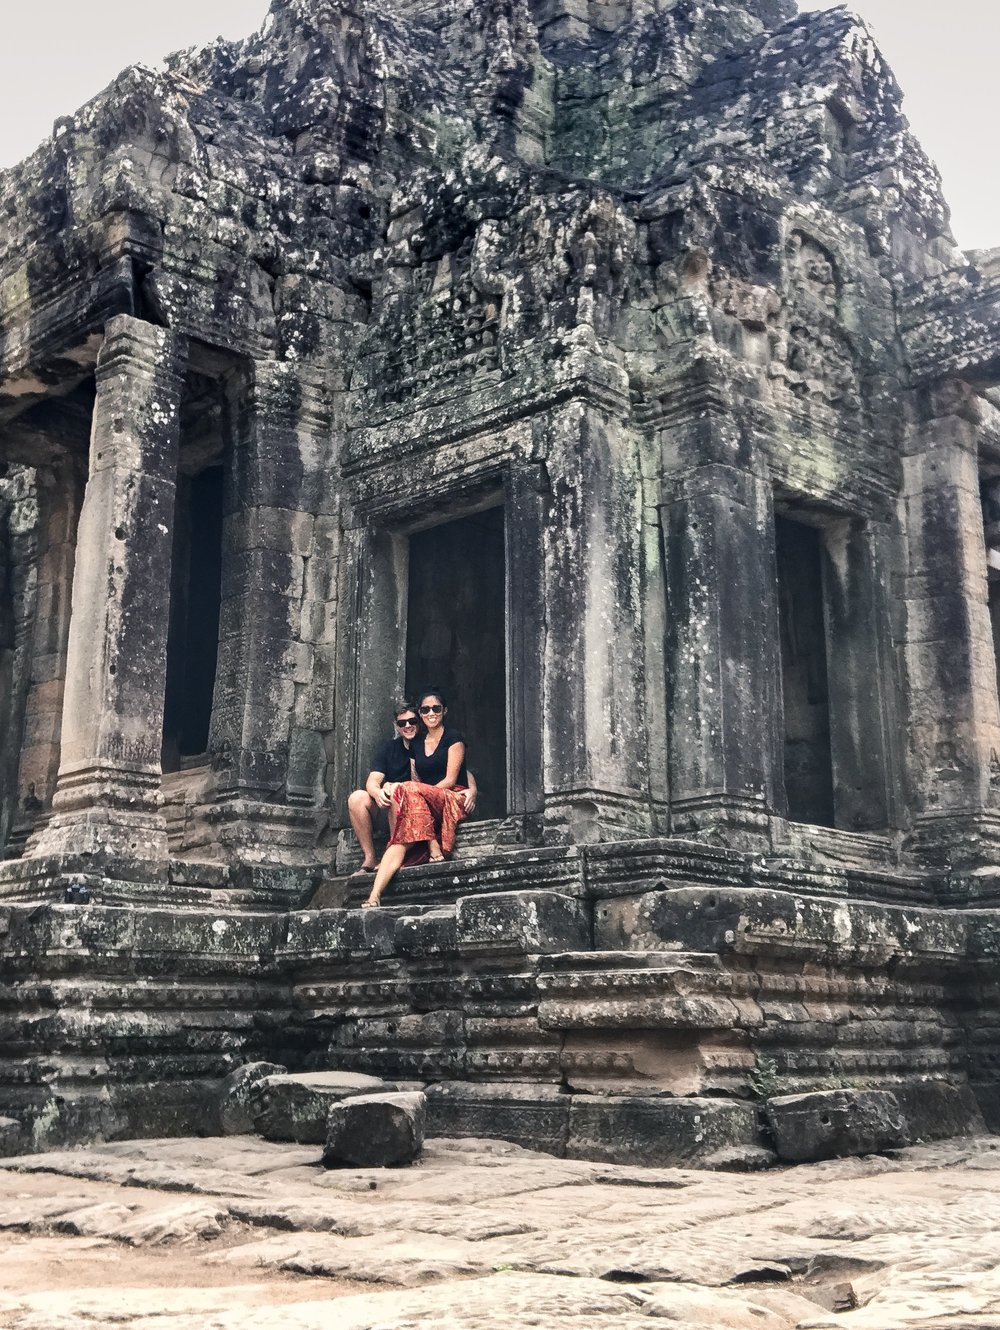 Although one this is one of the most blurry photos we've ever taken, it's a favourite. Taken in a quiet corner of The Bayon complex, where we spent a few moments alone in the midst of crowds. Pure magic.